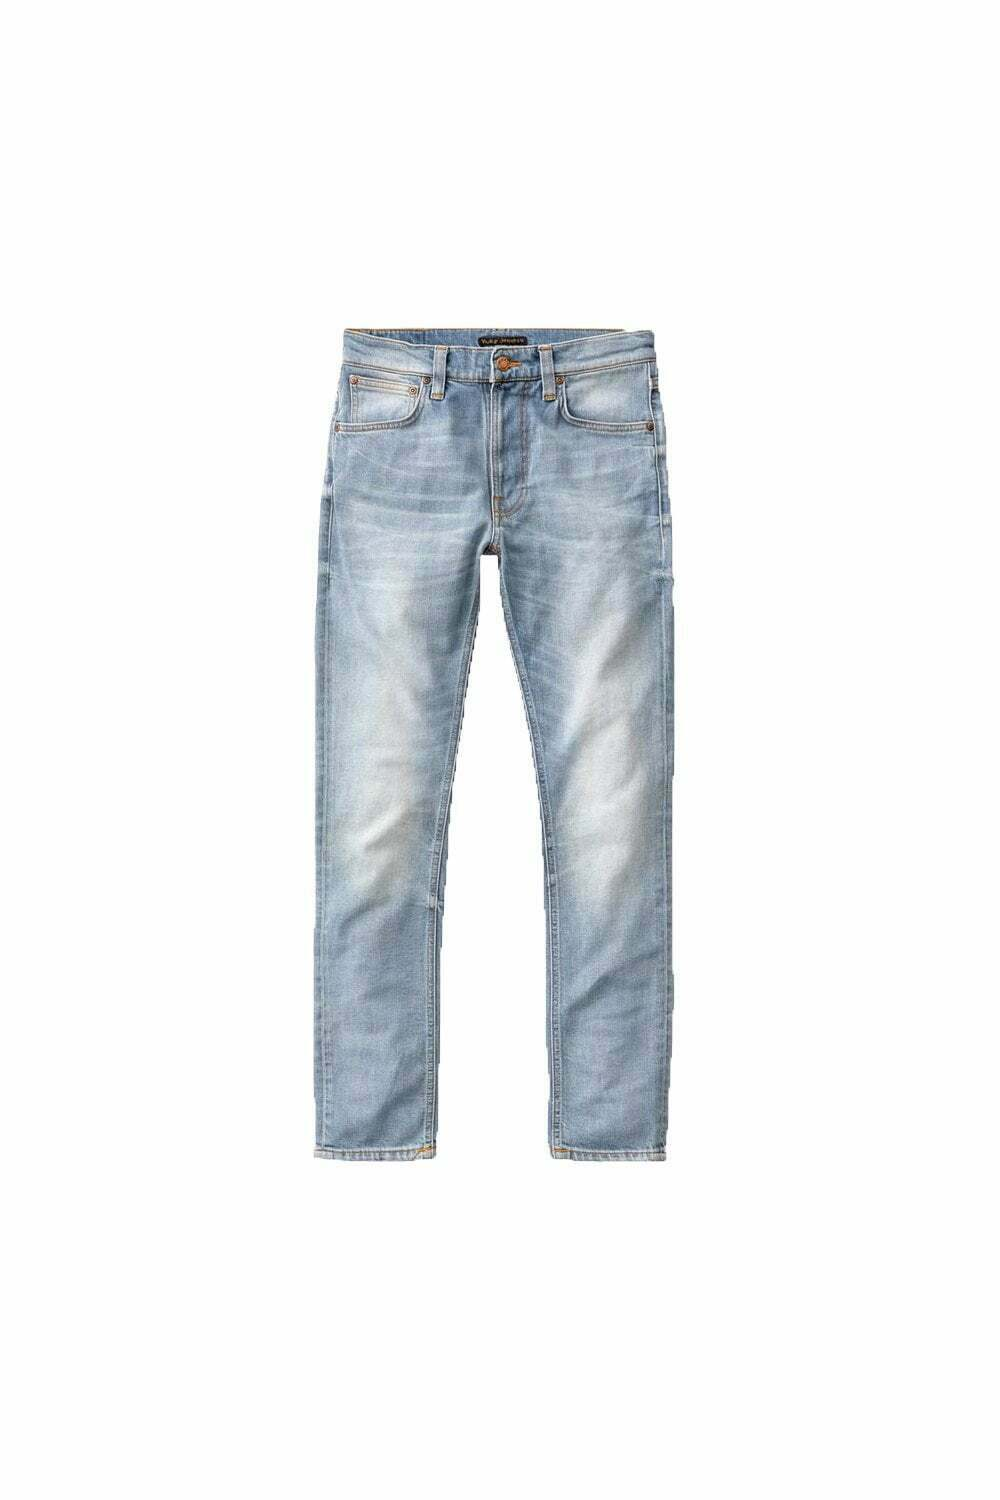 Nudie Jeans Co Lean Dean Slim Slim Slim Fit jeans usato (CROSS) 805465